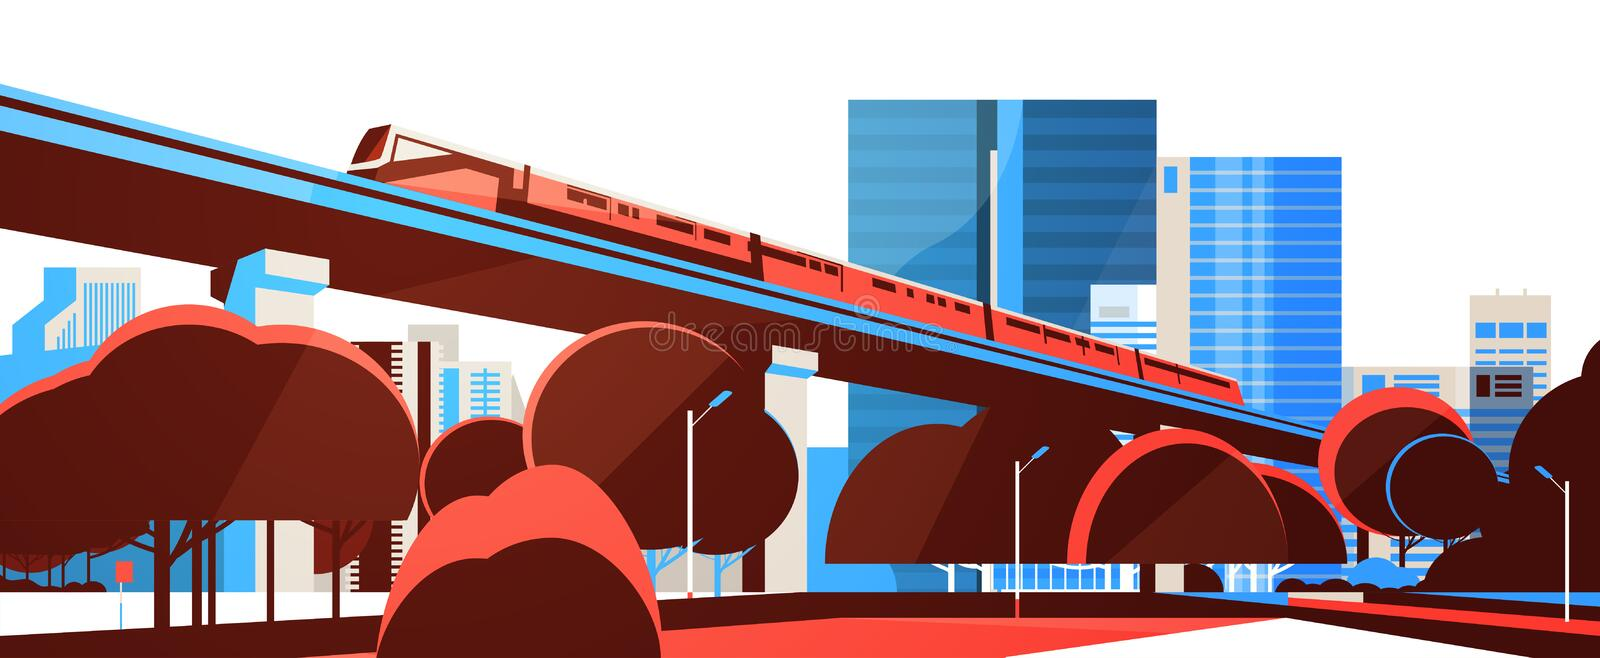 Subway monorail over city skyscraper view cityscape background skyline flat horizontal banner. Vector illustration vector illustration